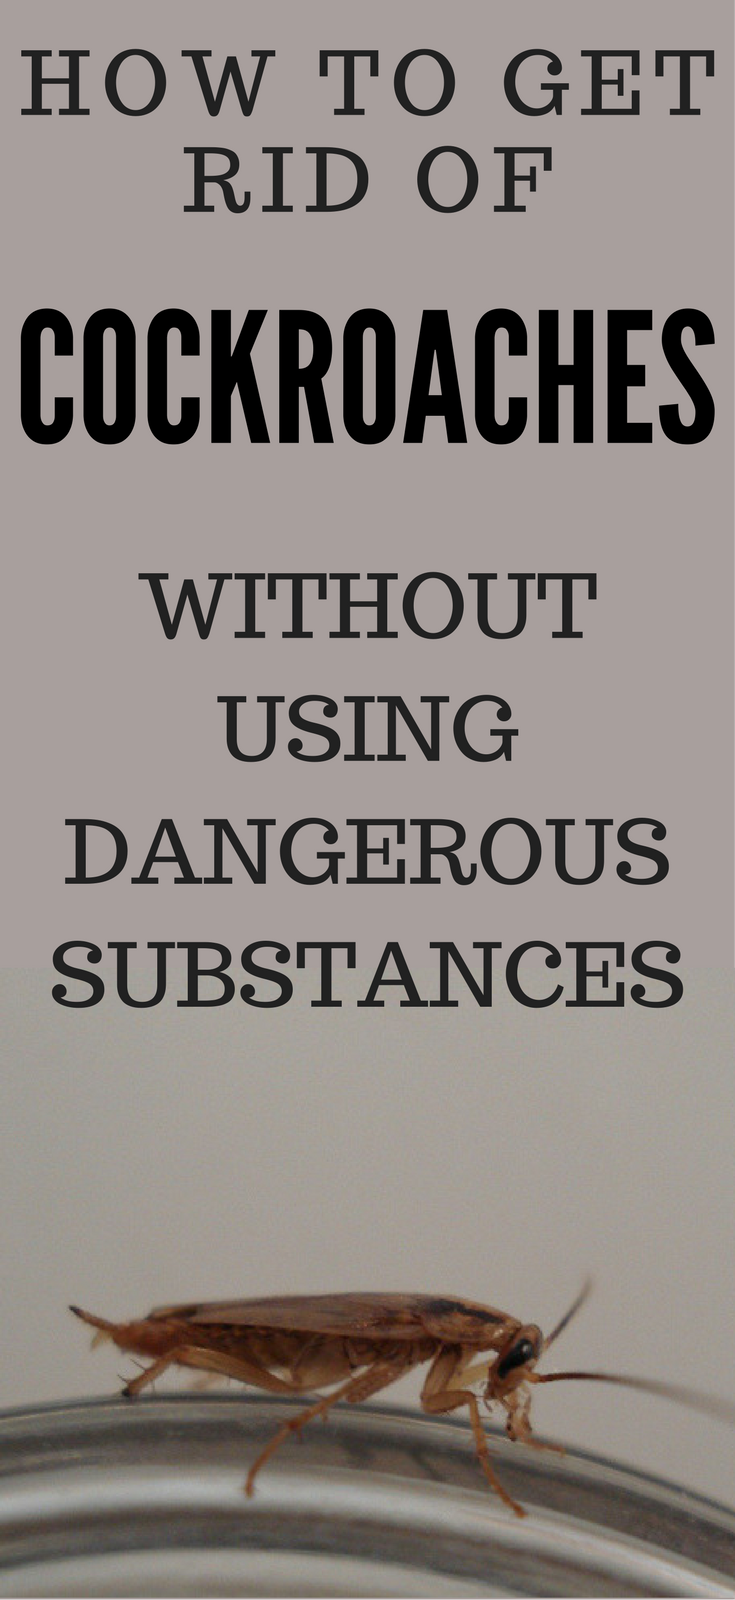 How to Get Rid of Cockroaches Without Using Dangerous Substances